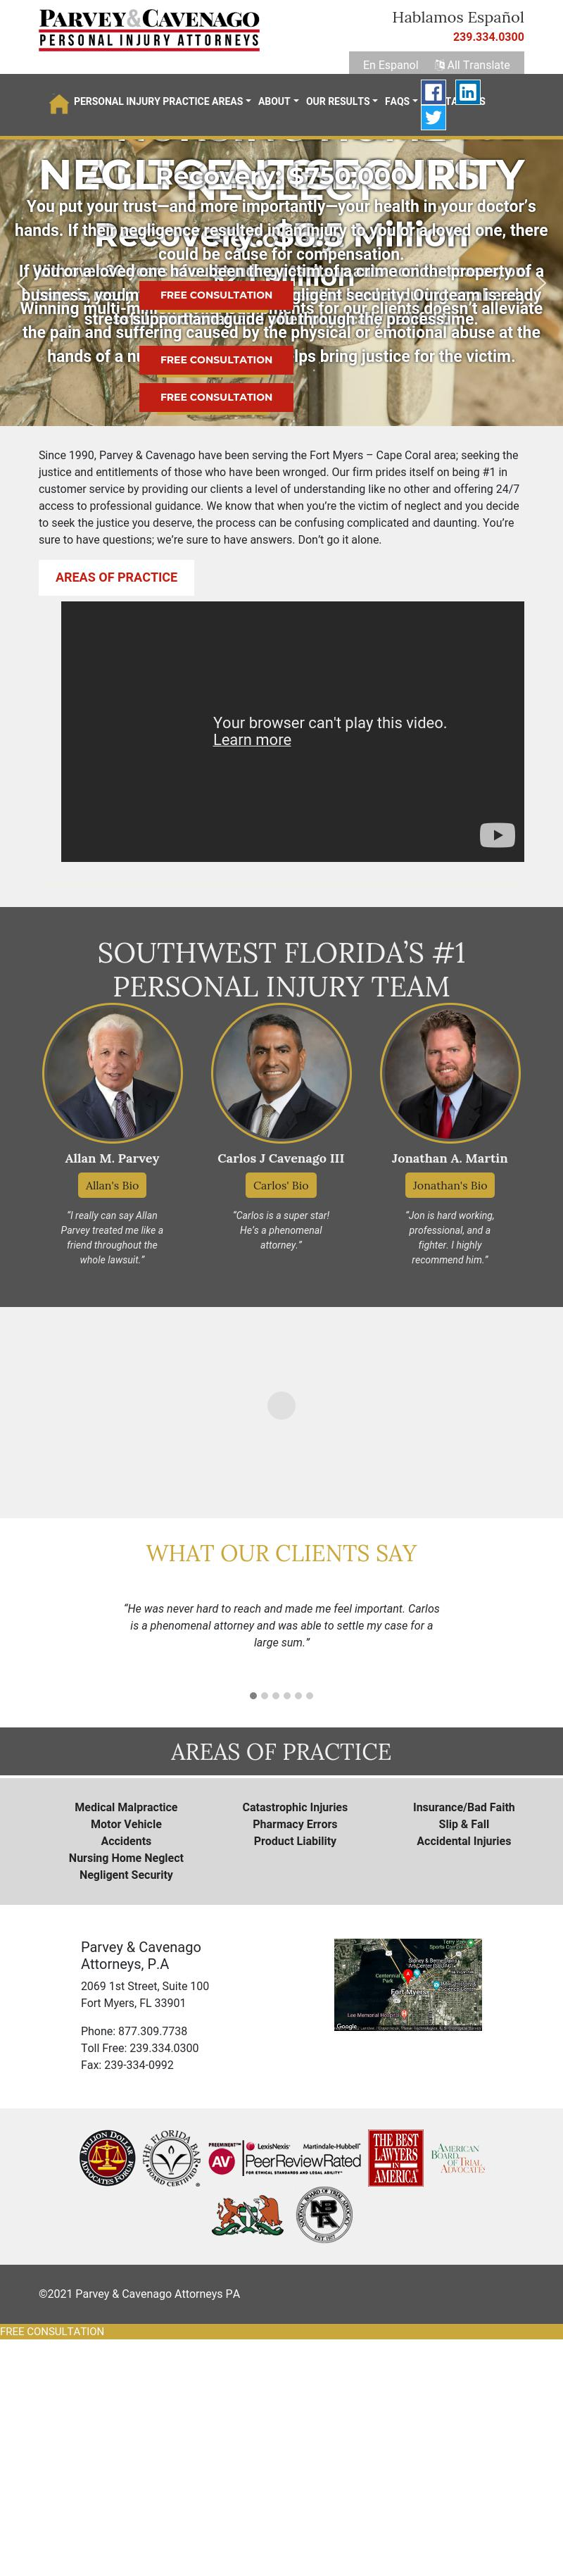 Parvey & Frankel Attorneys, P.A. - Fort Myers FL Lawyers